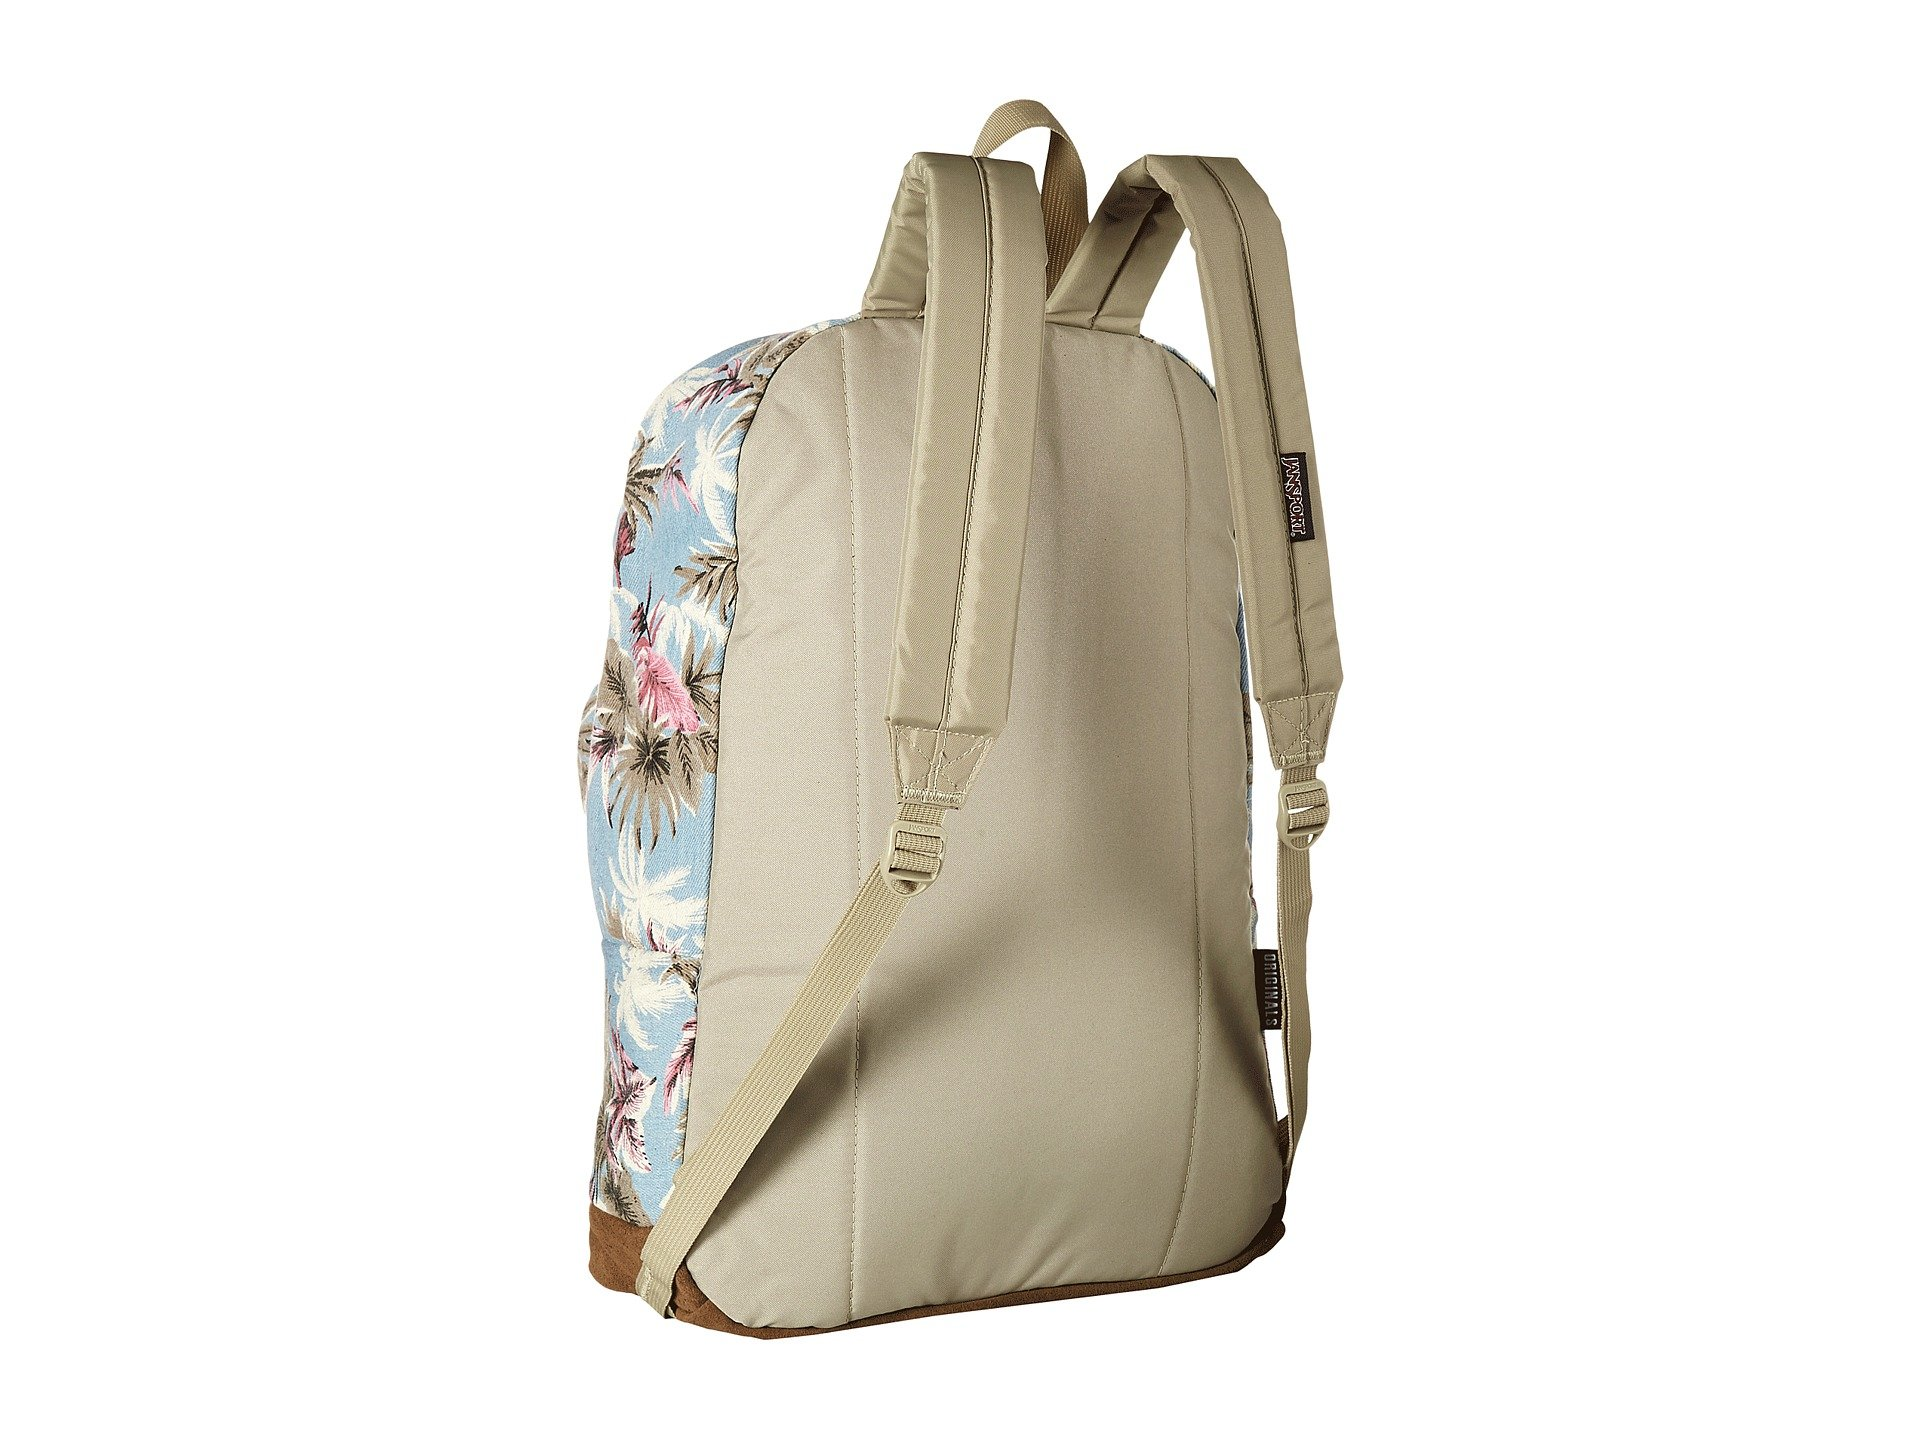 JanSport Unisex Right Pack Expressions Multi Palm Denim One Size by JanSport (Image #3)